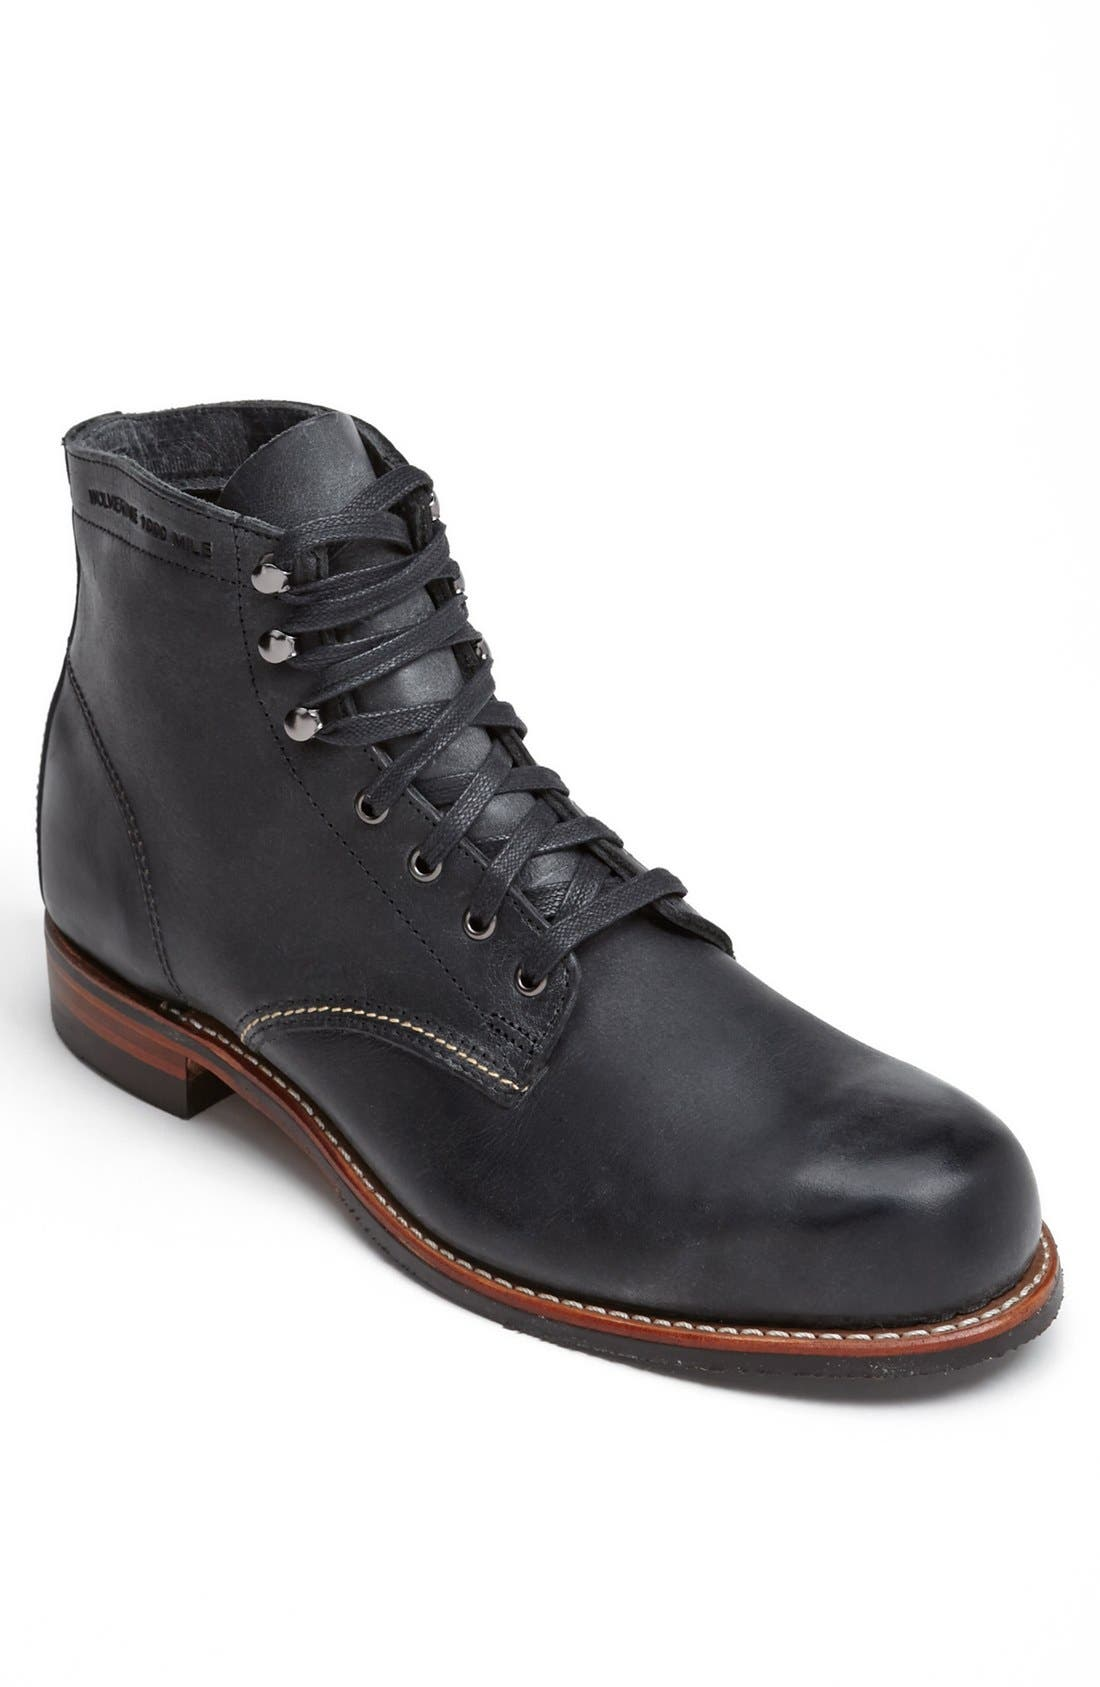 Main Image - Wolverine '1000 Mile - Morley' Round Toe Boot